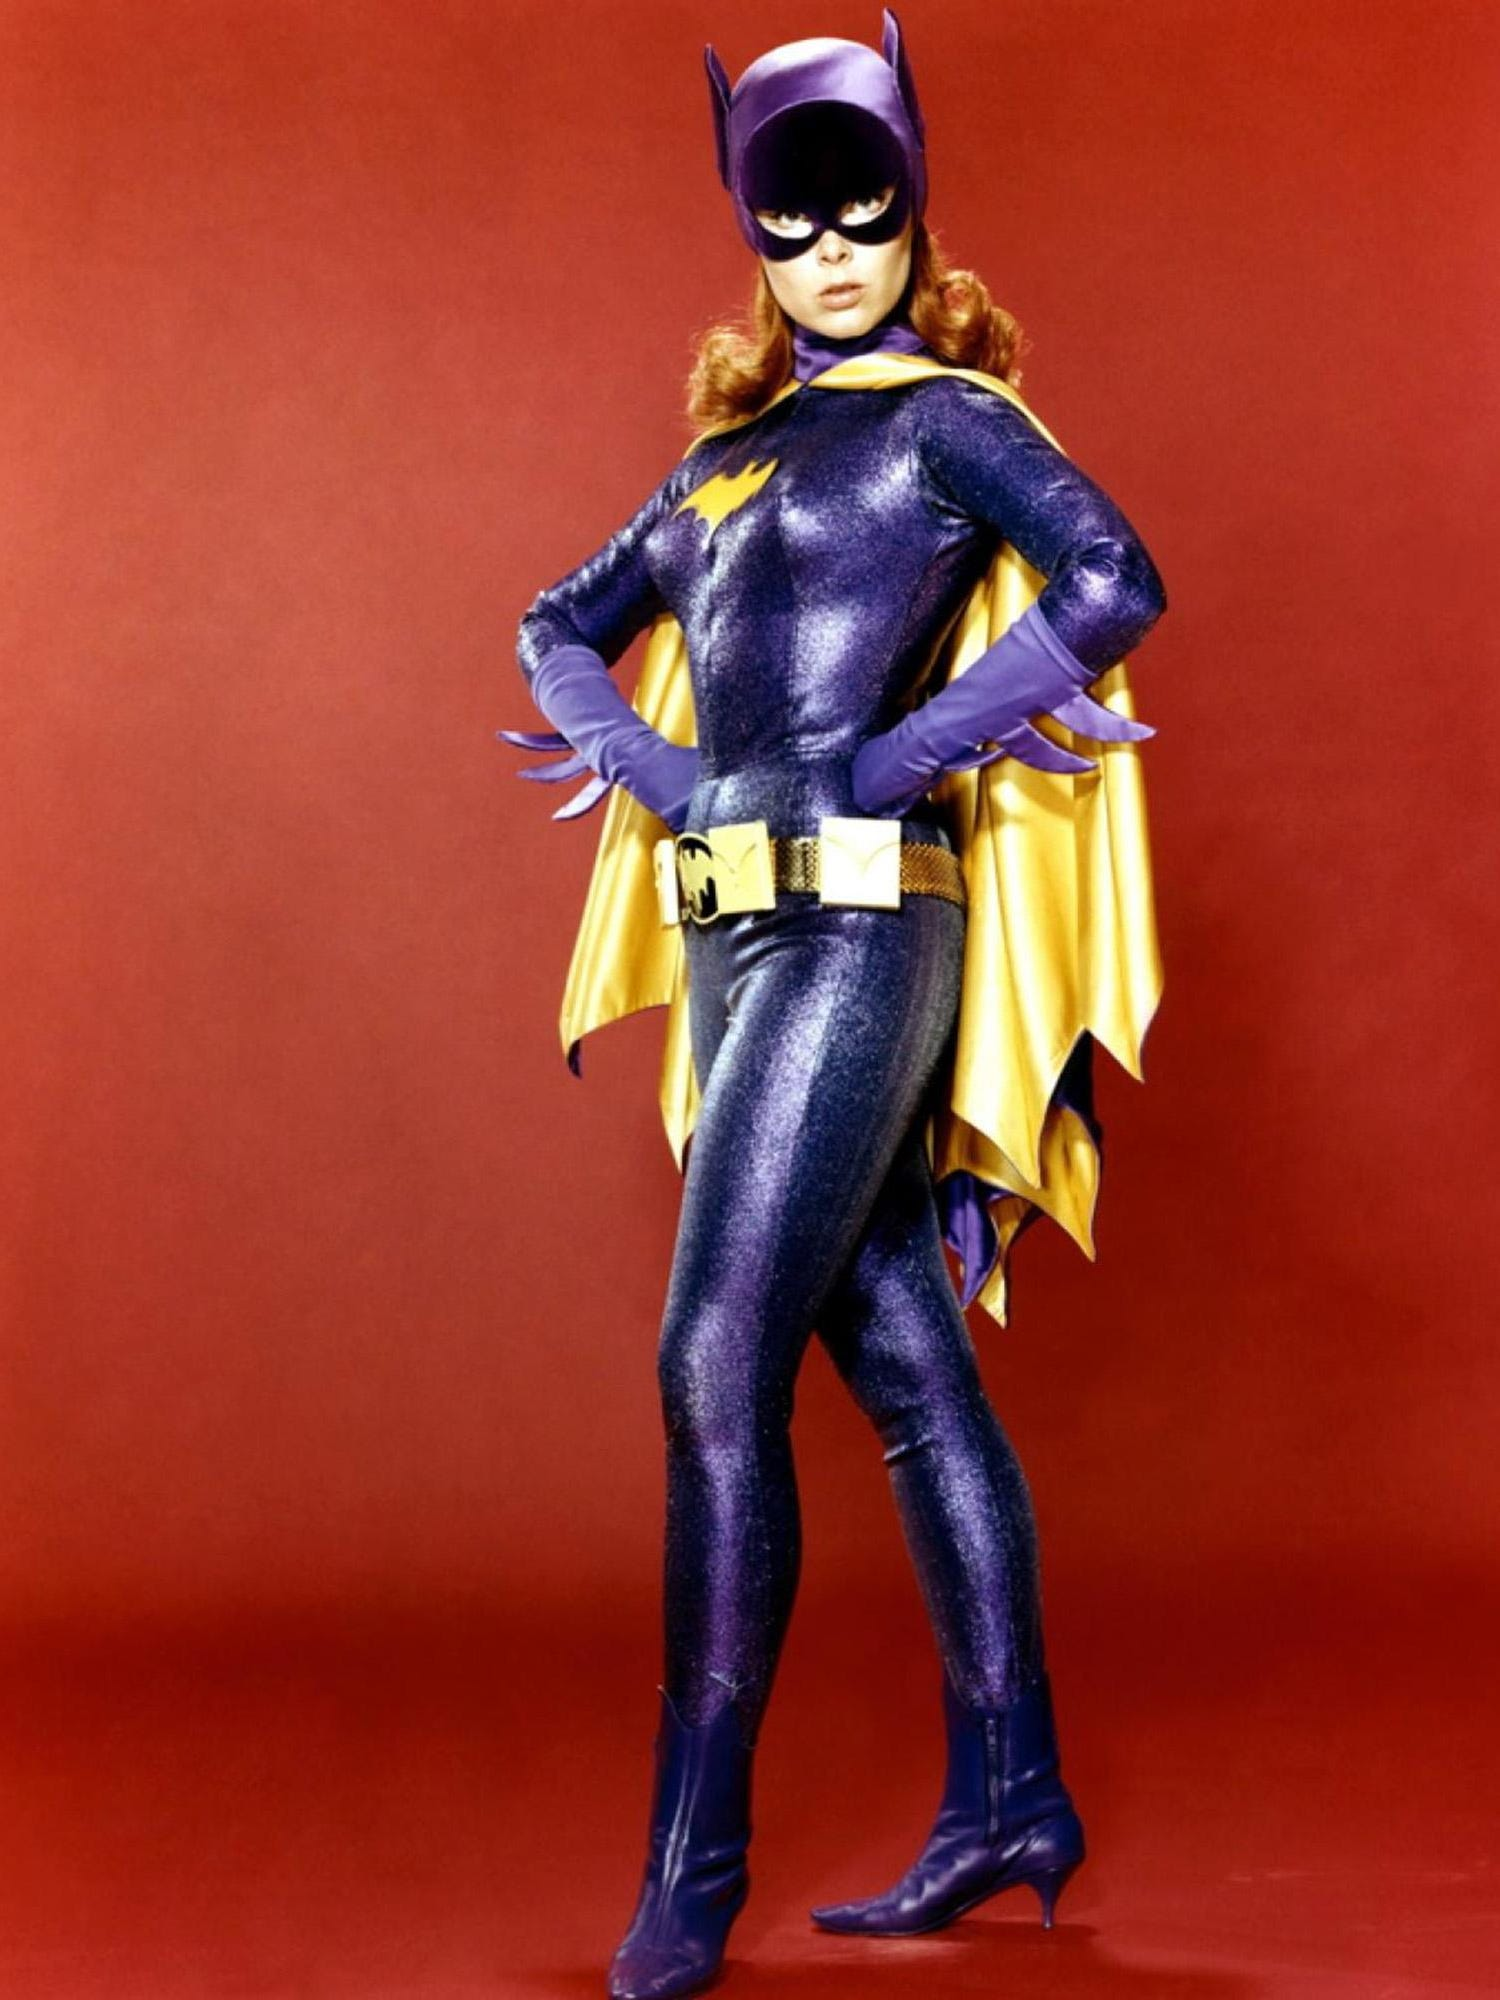 Yvonne Craig, who played Batgirl in the '60s, dies